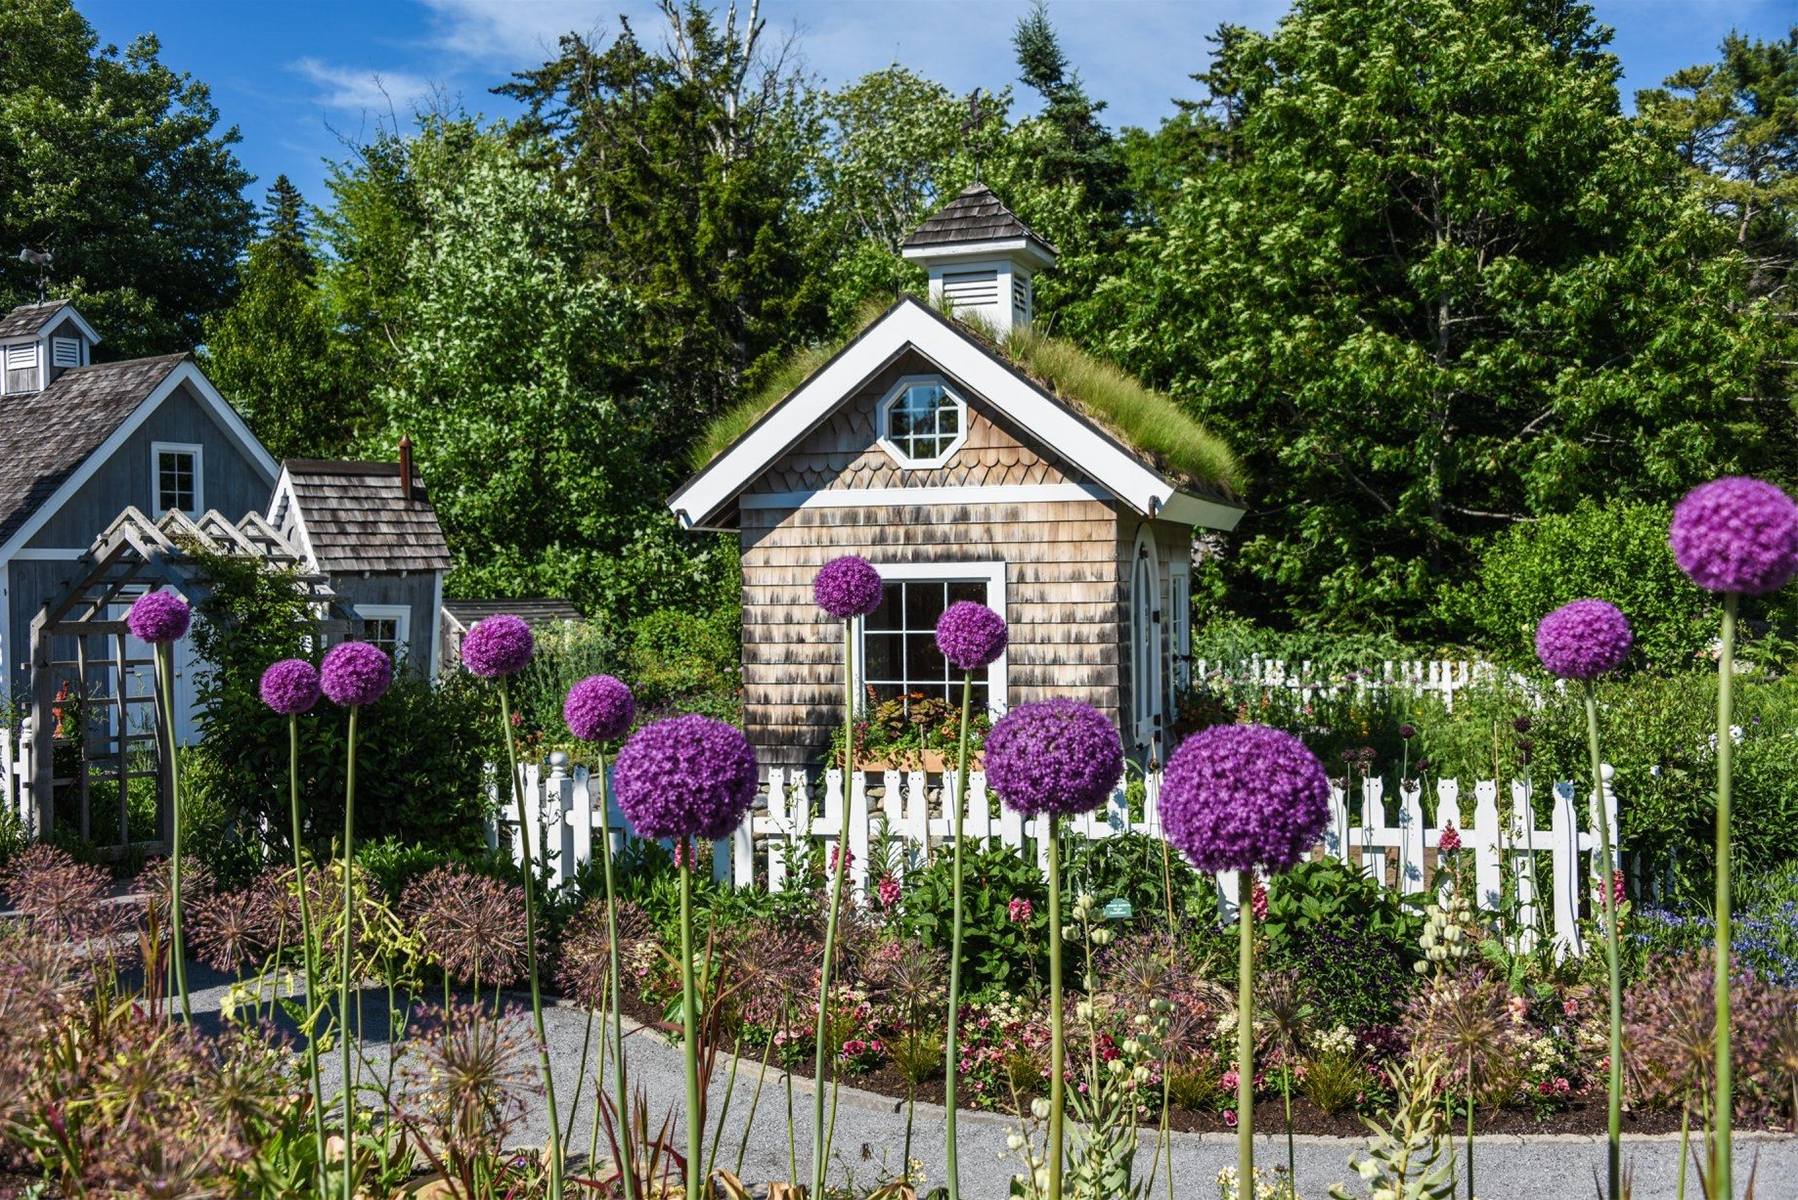 Top 5 Things to do in the Boothbay Area